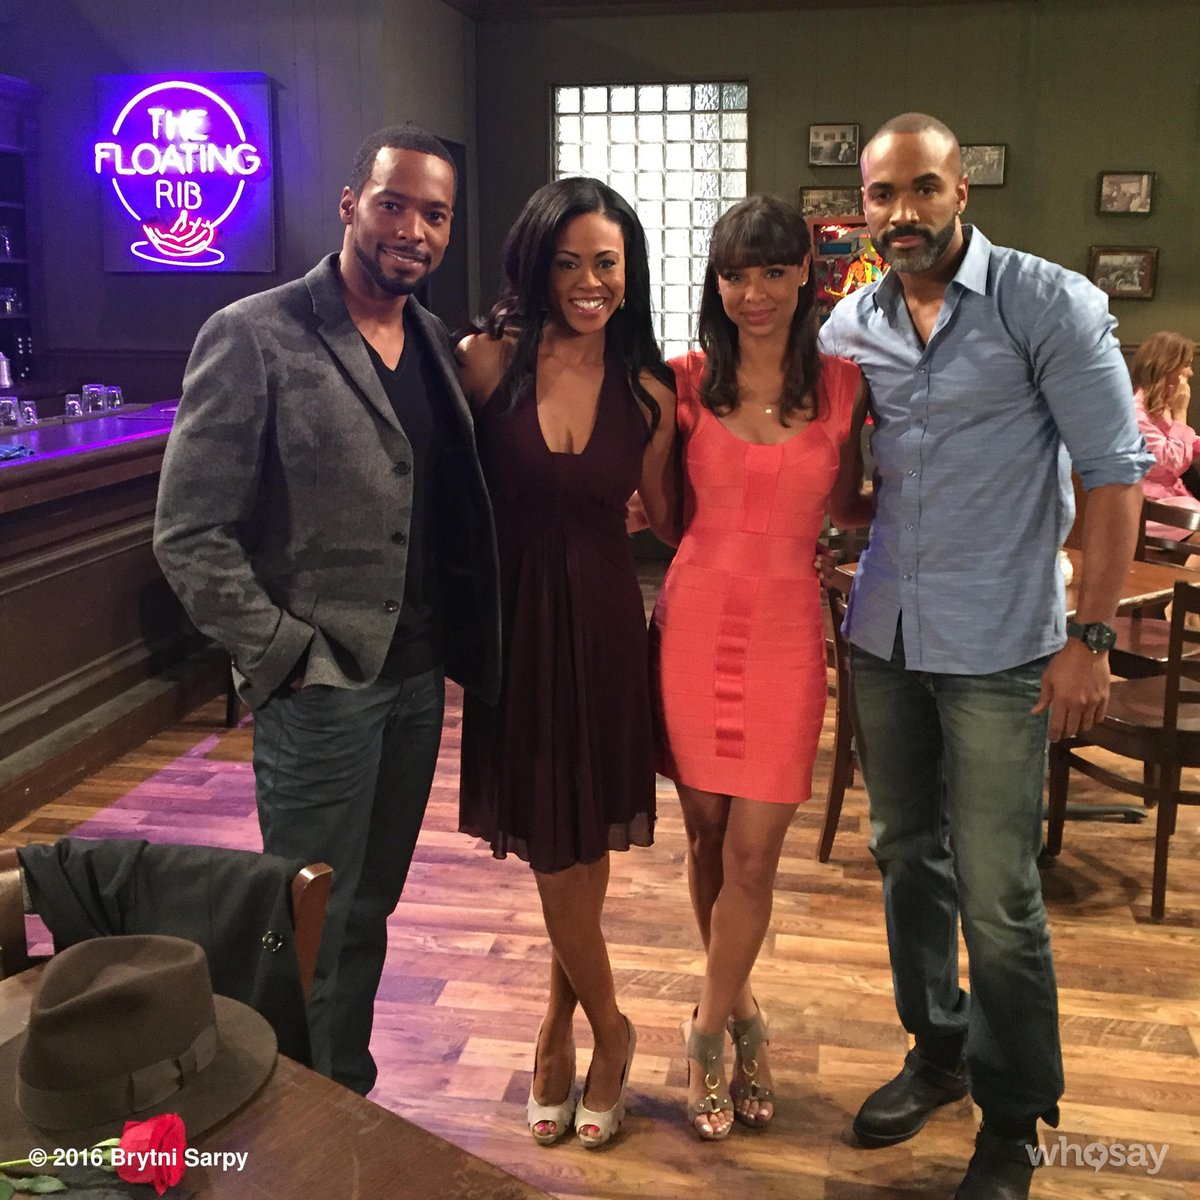 @MrAMontgomery @VinessaAntoine @donnellturner Happy Valentine's Day lovers ❤️ V-day continues on #Gh tomorrow... https://t.co/MNU4eKB6TL